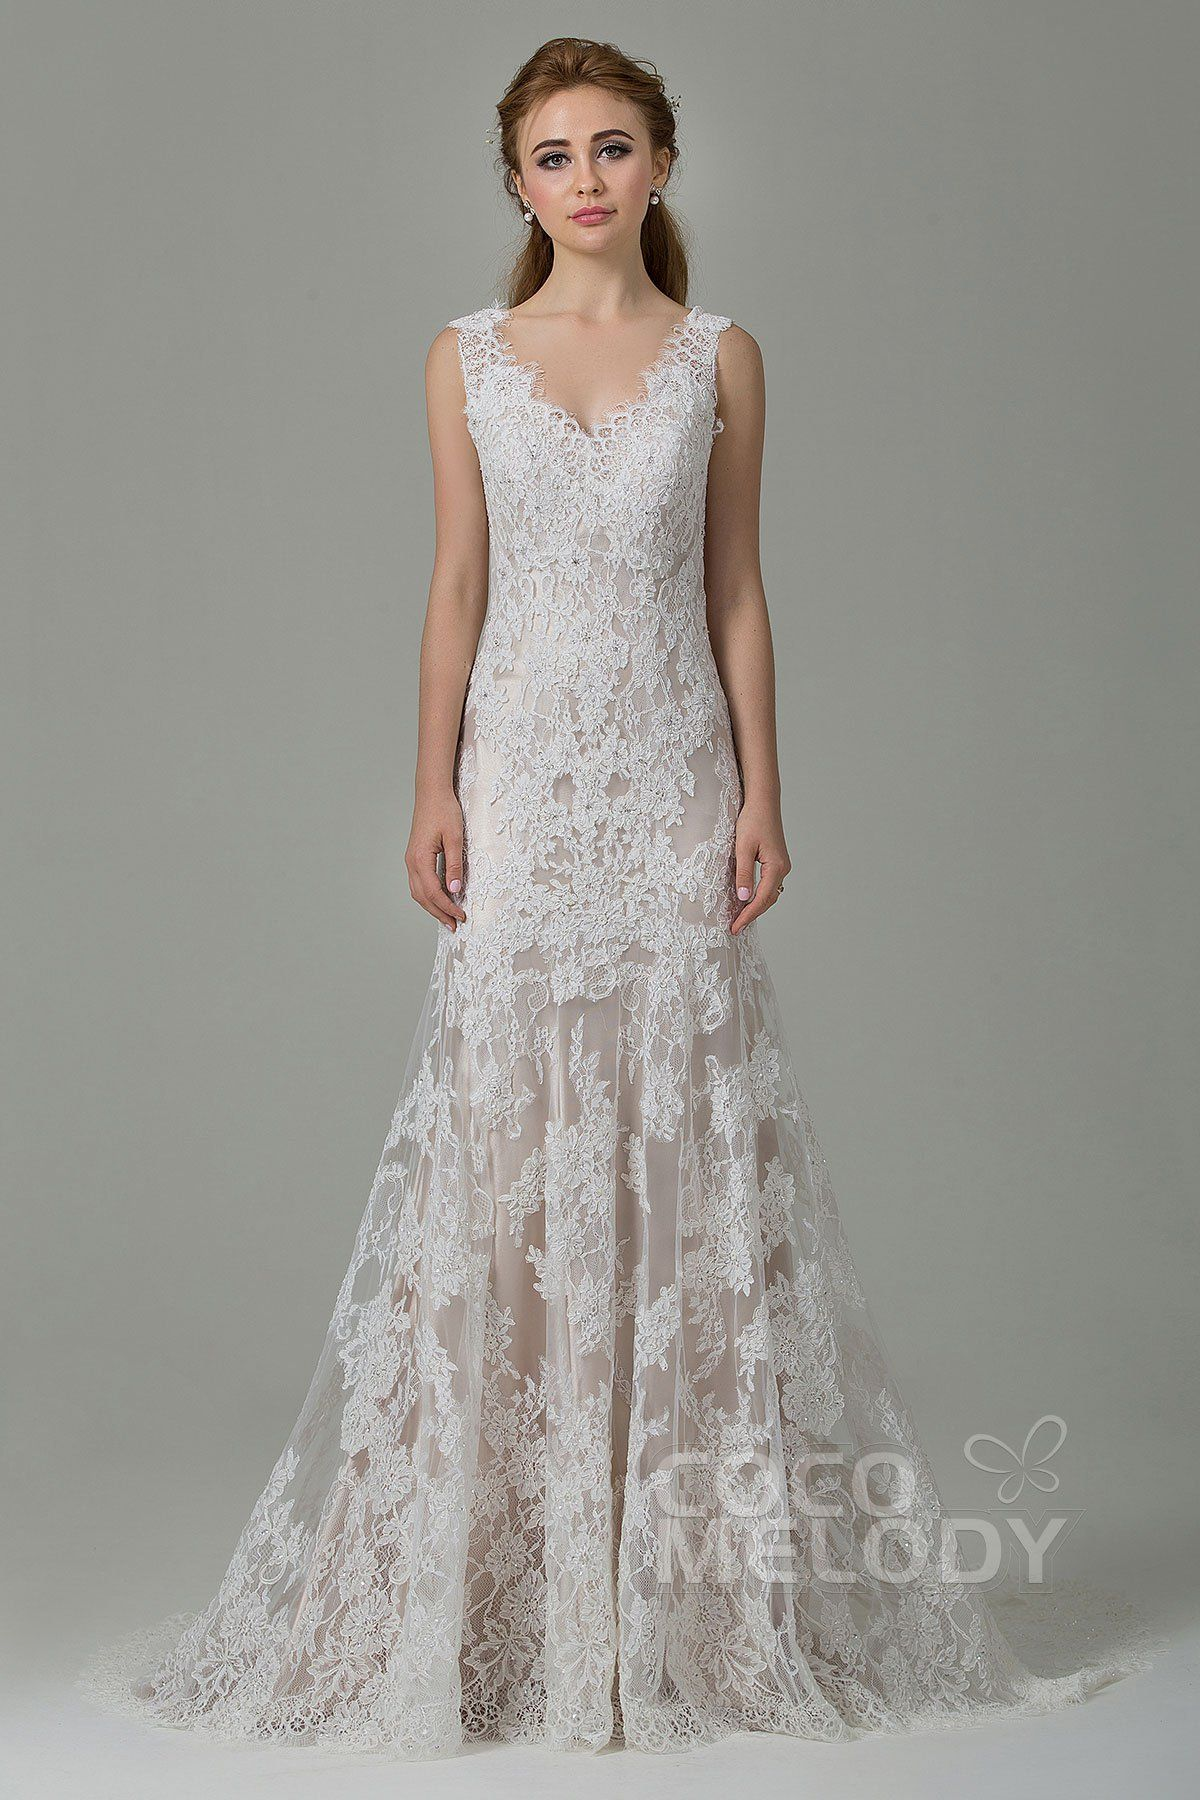 58ec1ce5c9 Fabulous Sheath-Column V-Neck Natural Sweep-Brush Train Lace  Ivory Champagne Sleeveless Open Back Wedding Dress with Appliques and  Beading CWXT14061